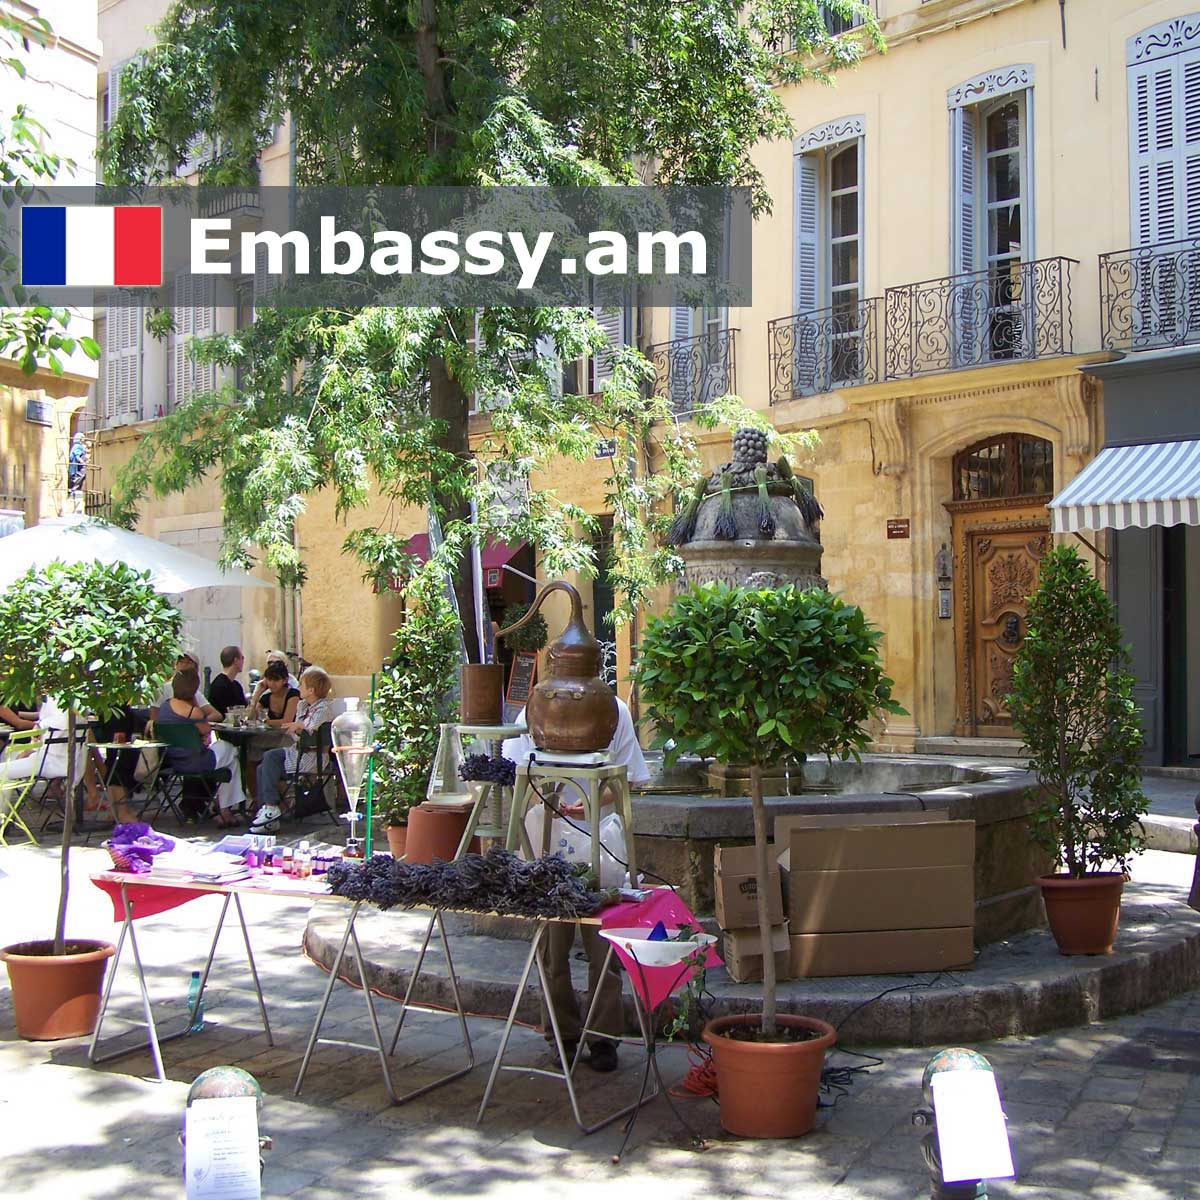 Aix-en-Provence - Hotels in France - Embassy.am